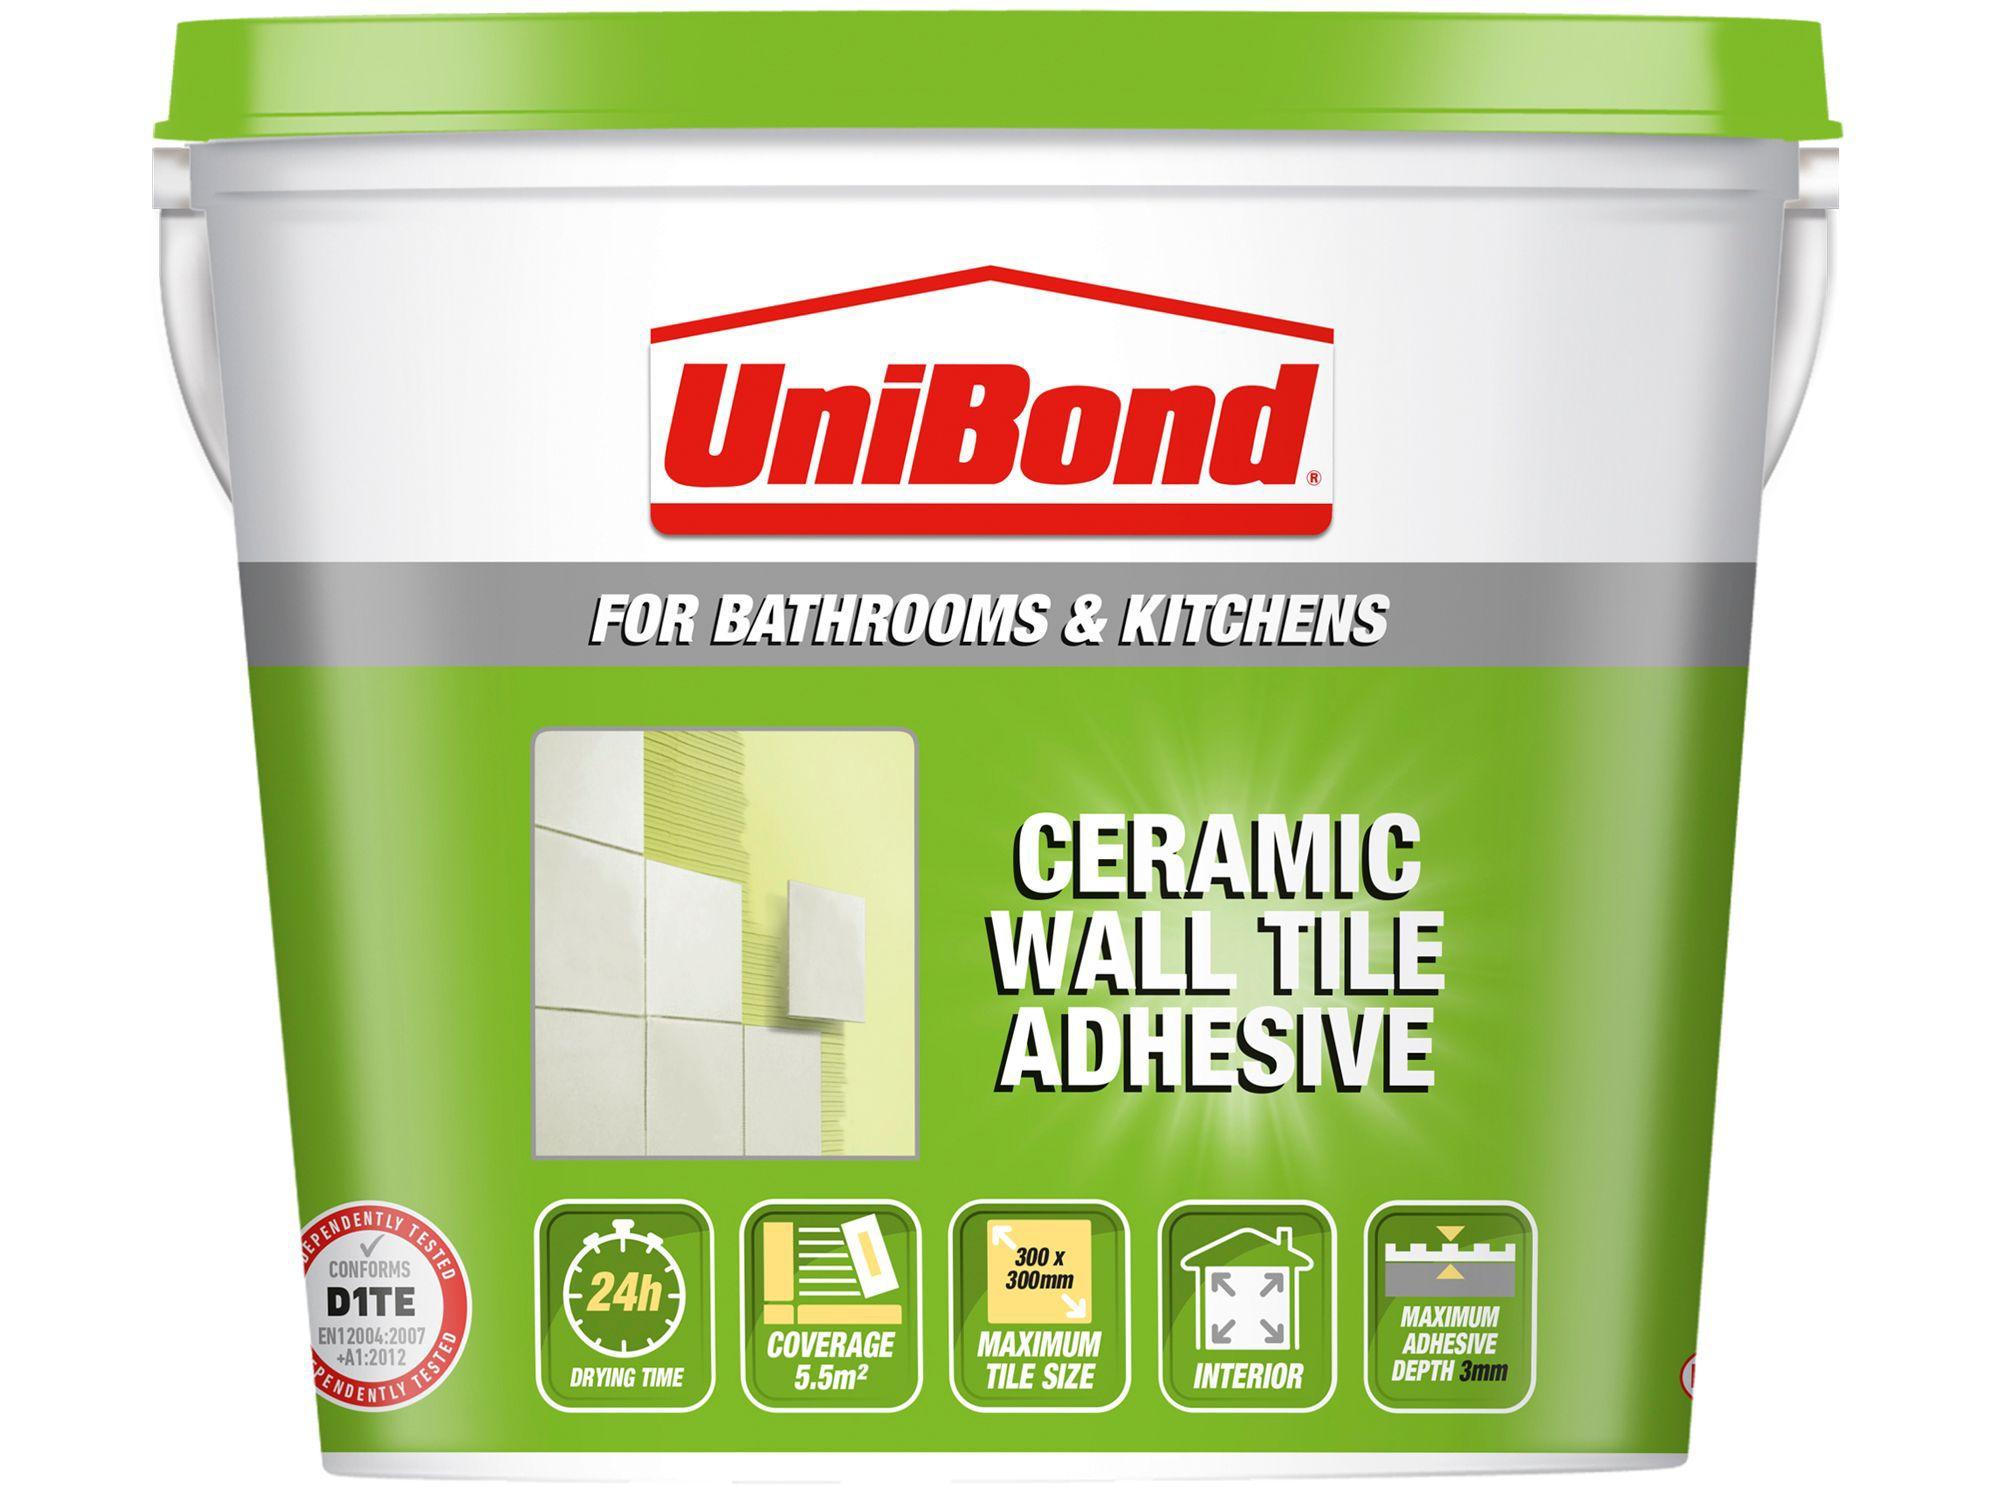 Unibond ready to use wall tile adhesive beige 74kg departments unibond ready to use wall tile adhesive beige 74kg departments diy at bq dailygadgetfo Images